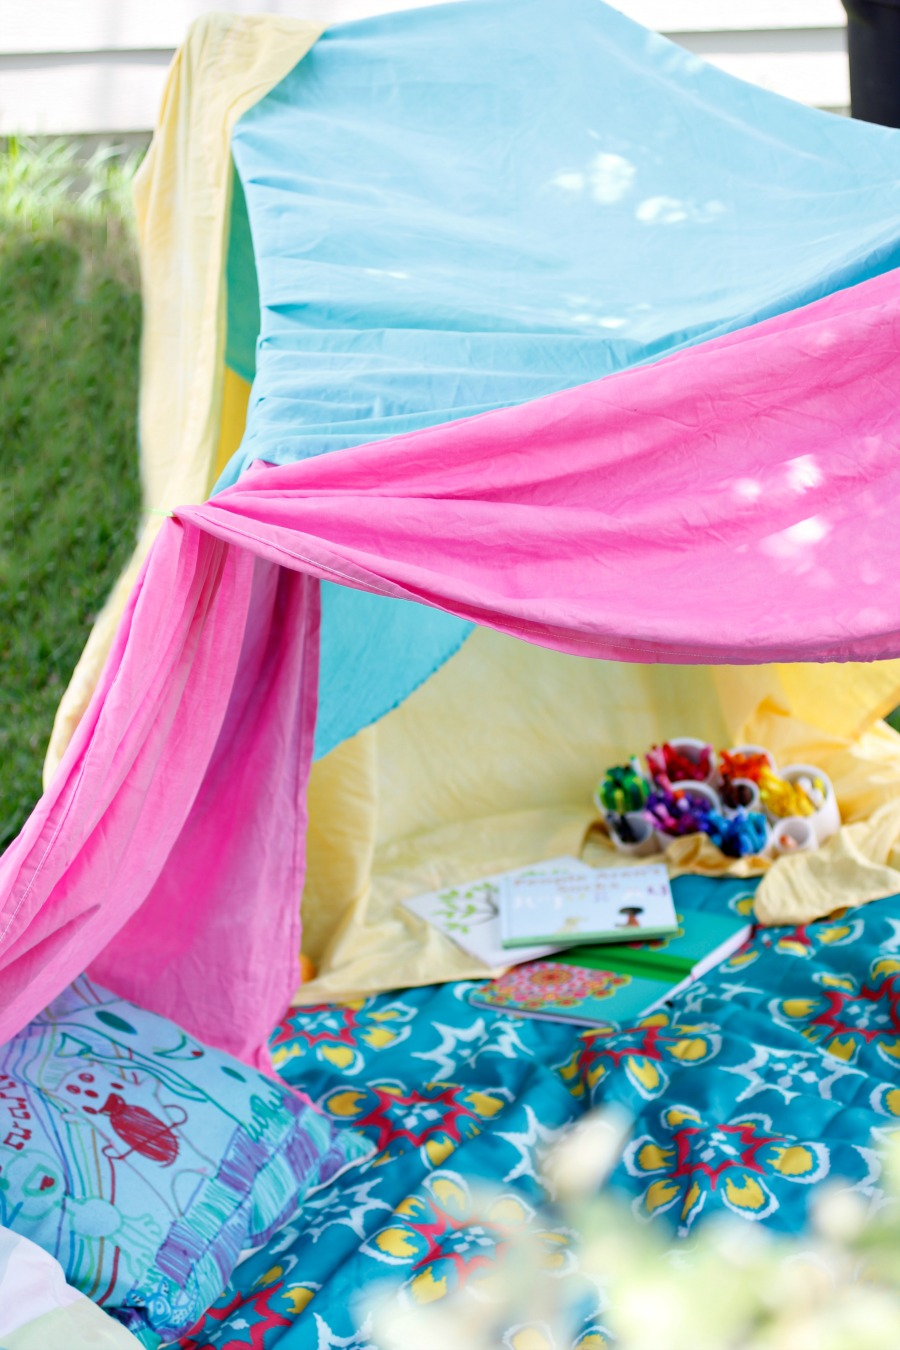 backyard forts make the perfect reading and coloring spot, we keep a fort kit by the door so the kids can build one whenever they want